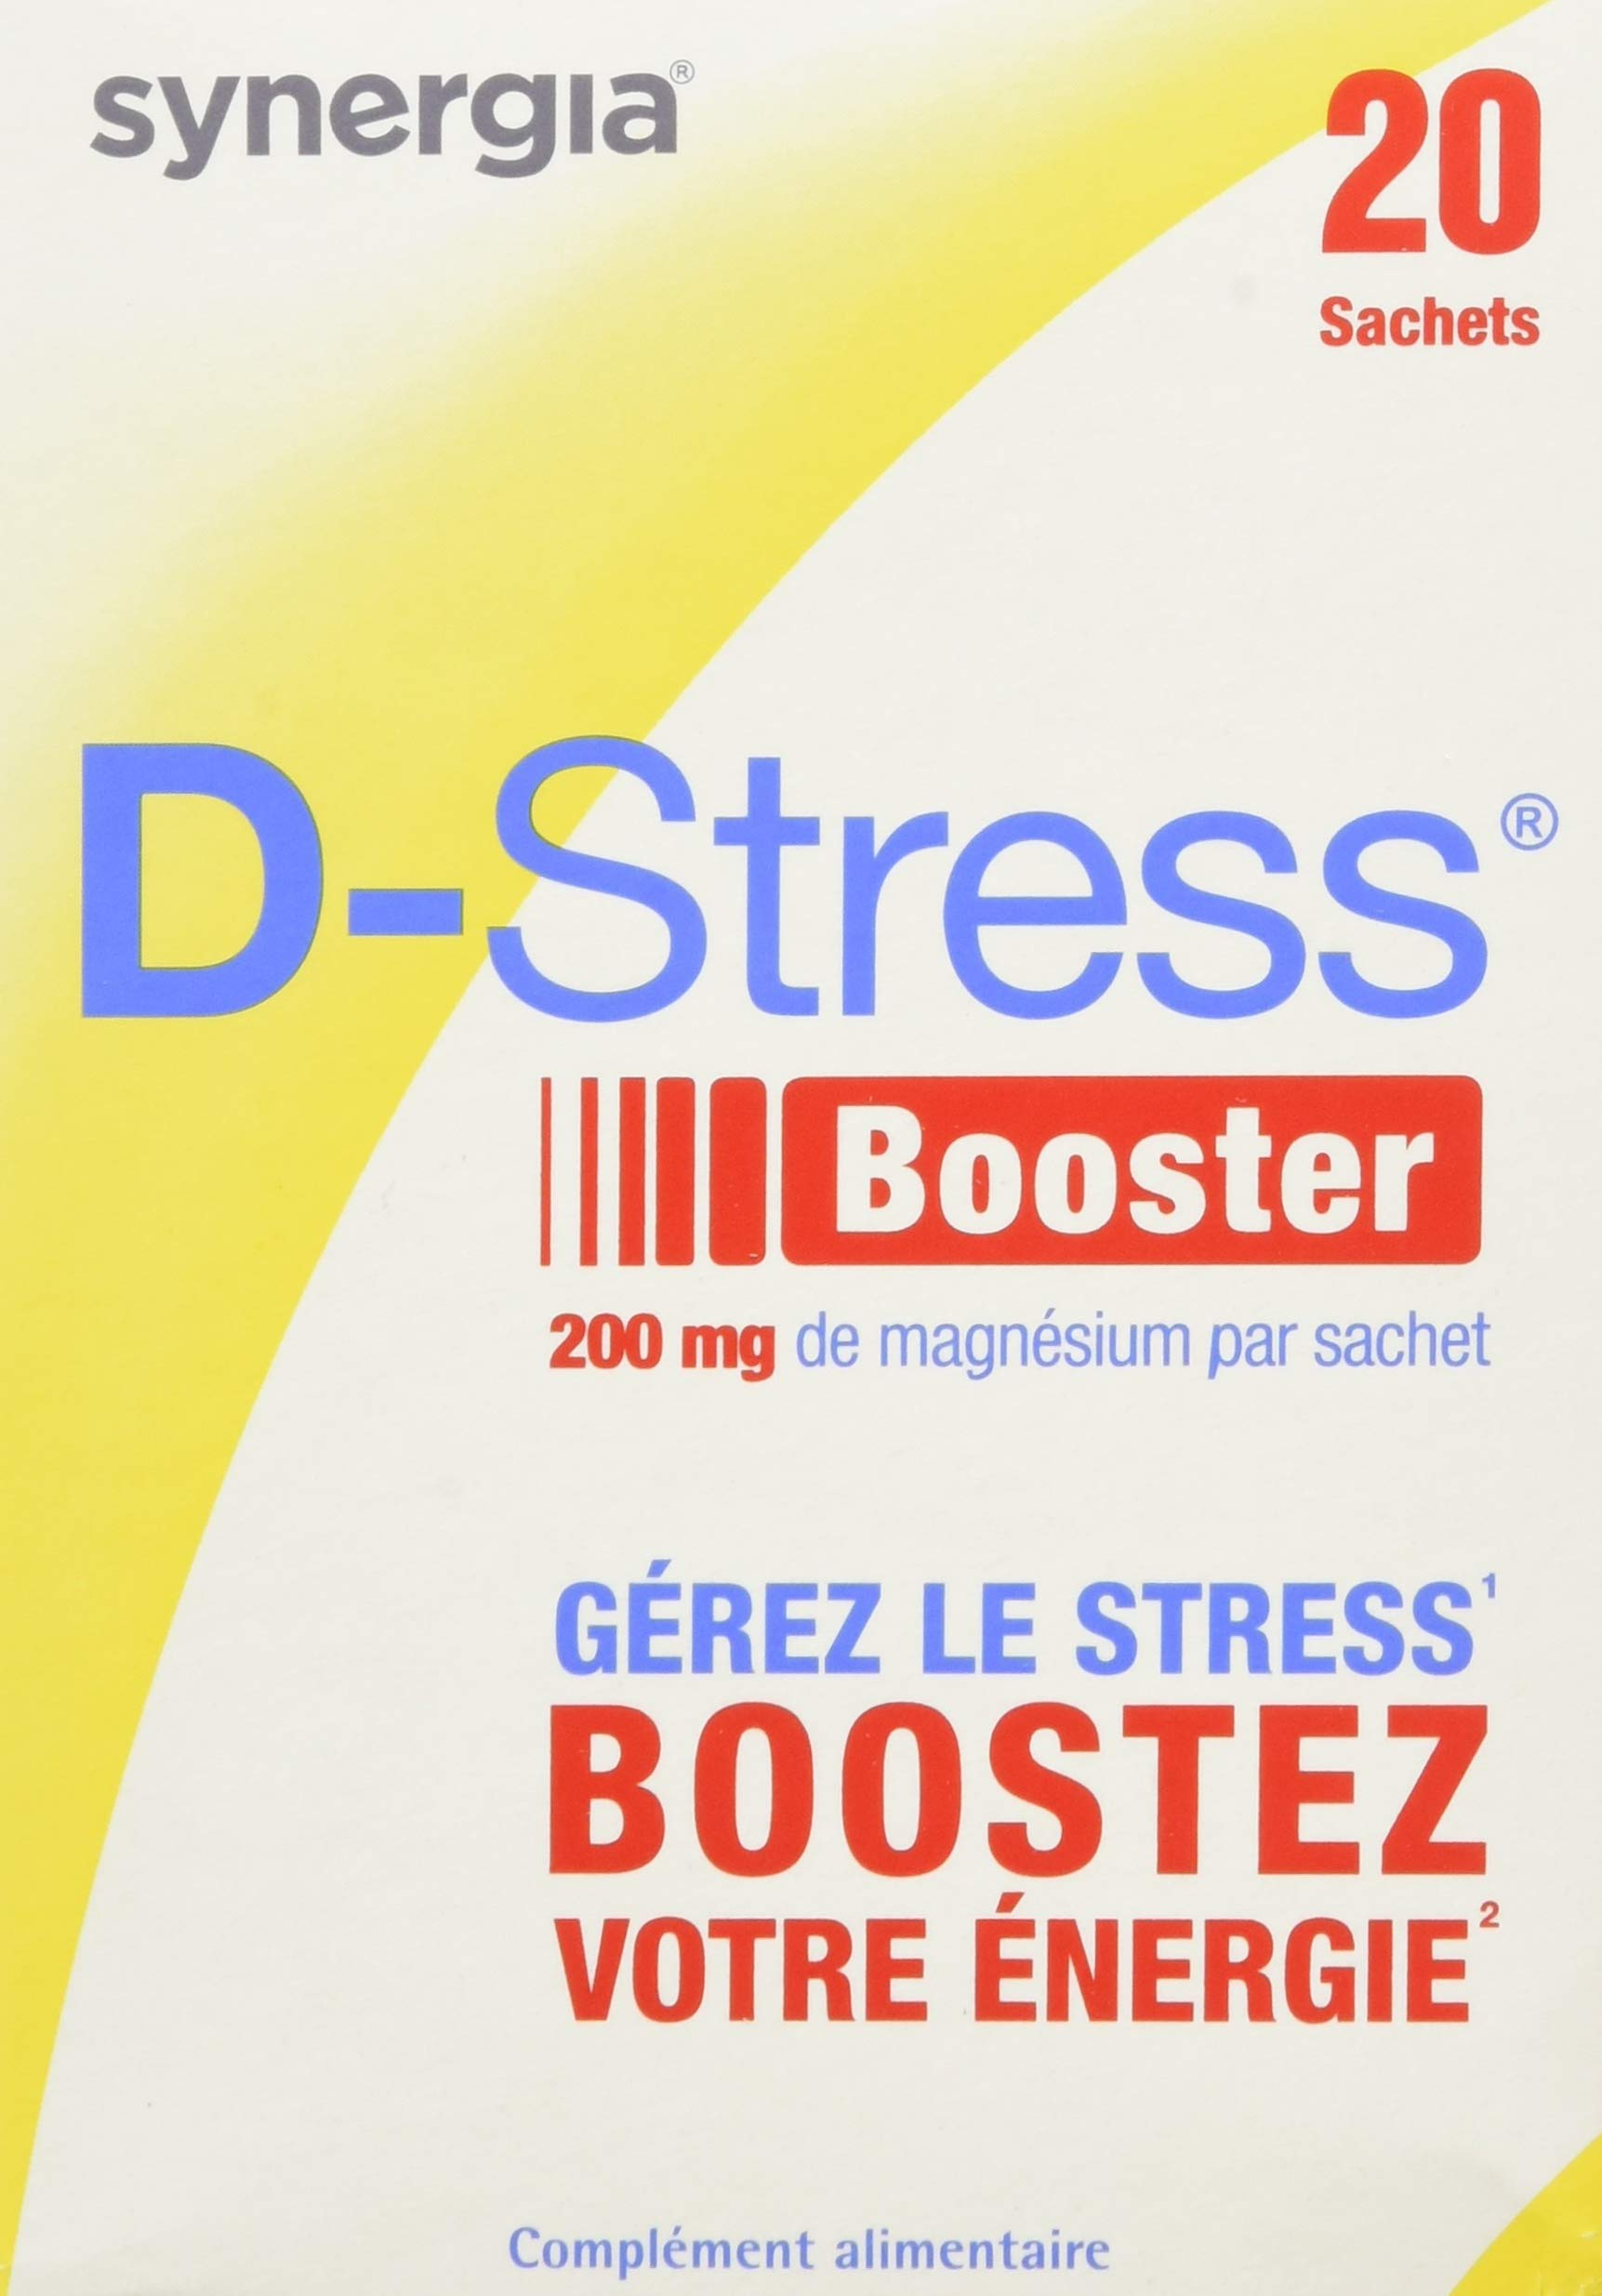 Synergia D-Stress Booster 20 Sachets by Synergia